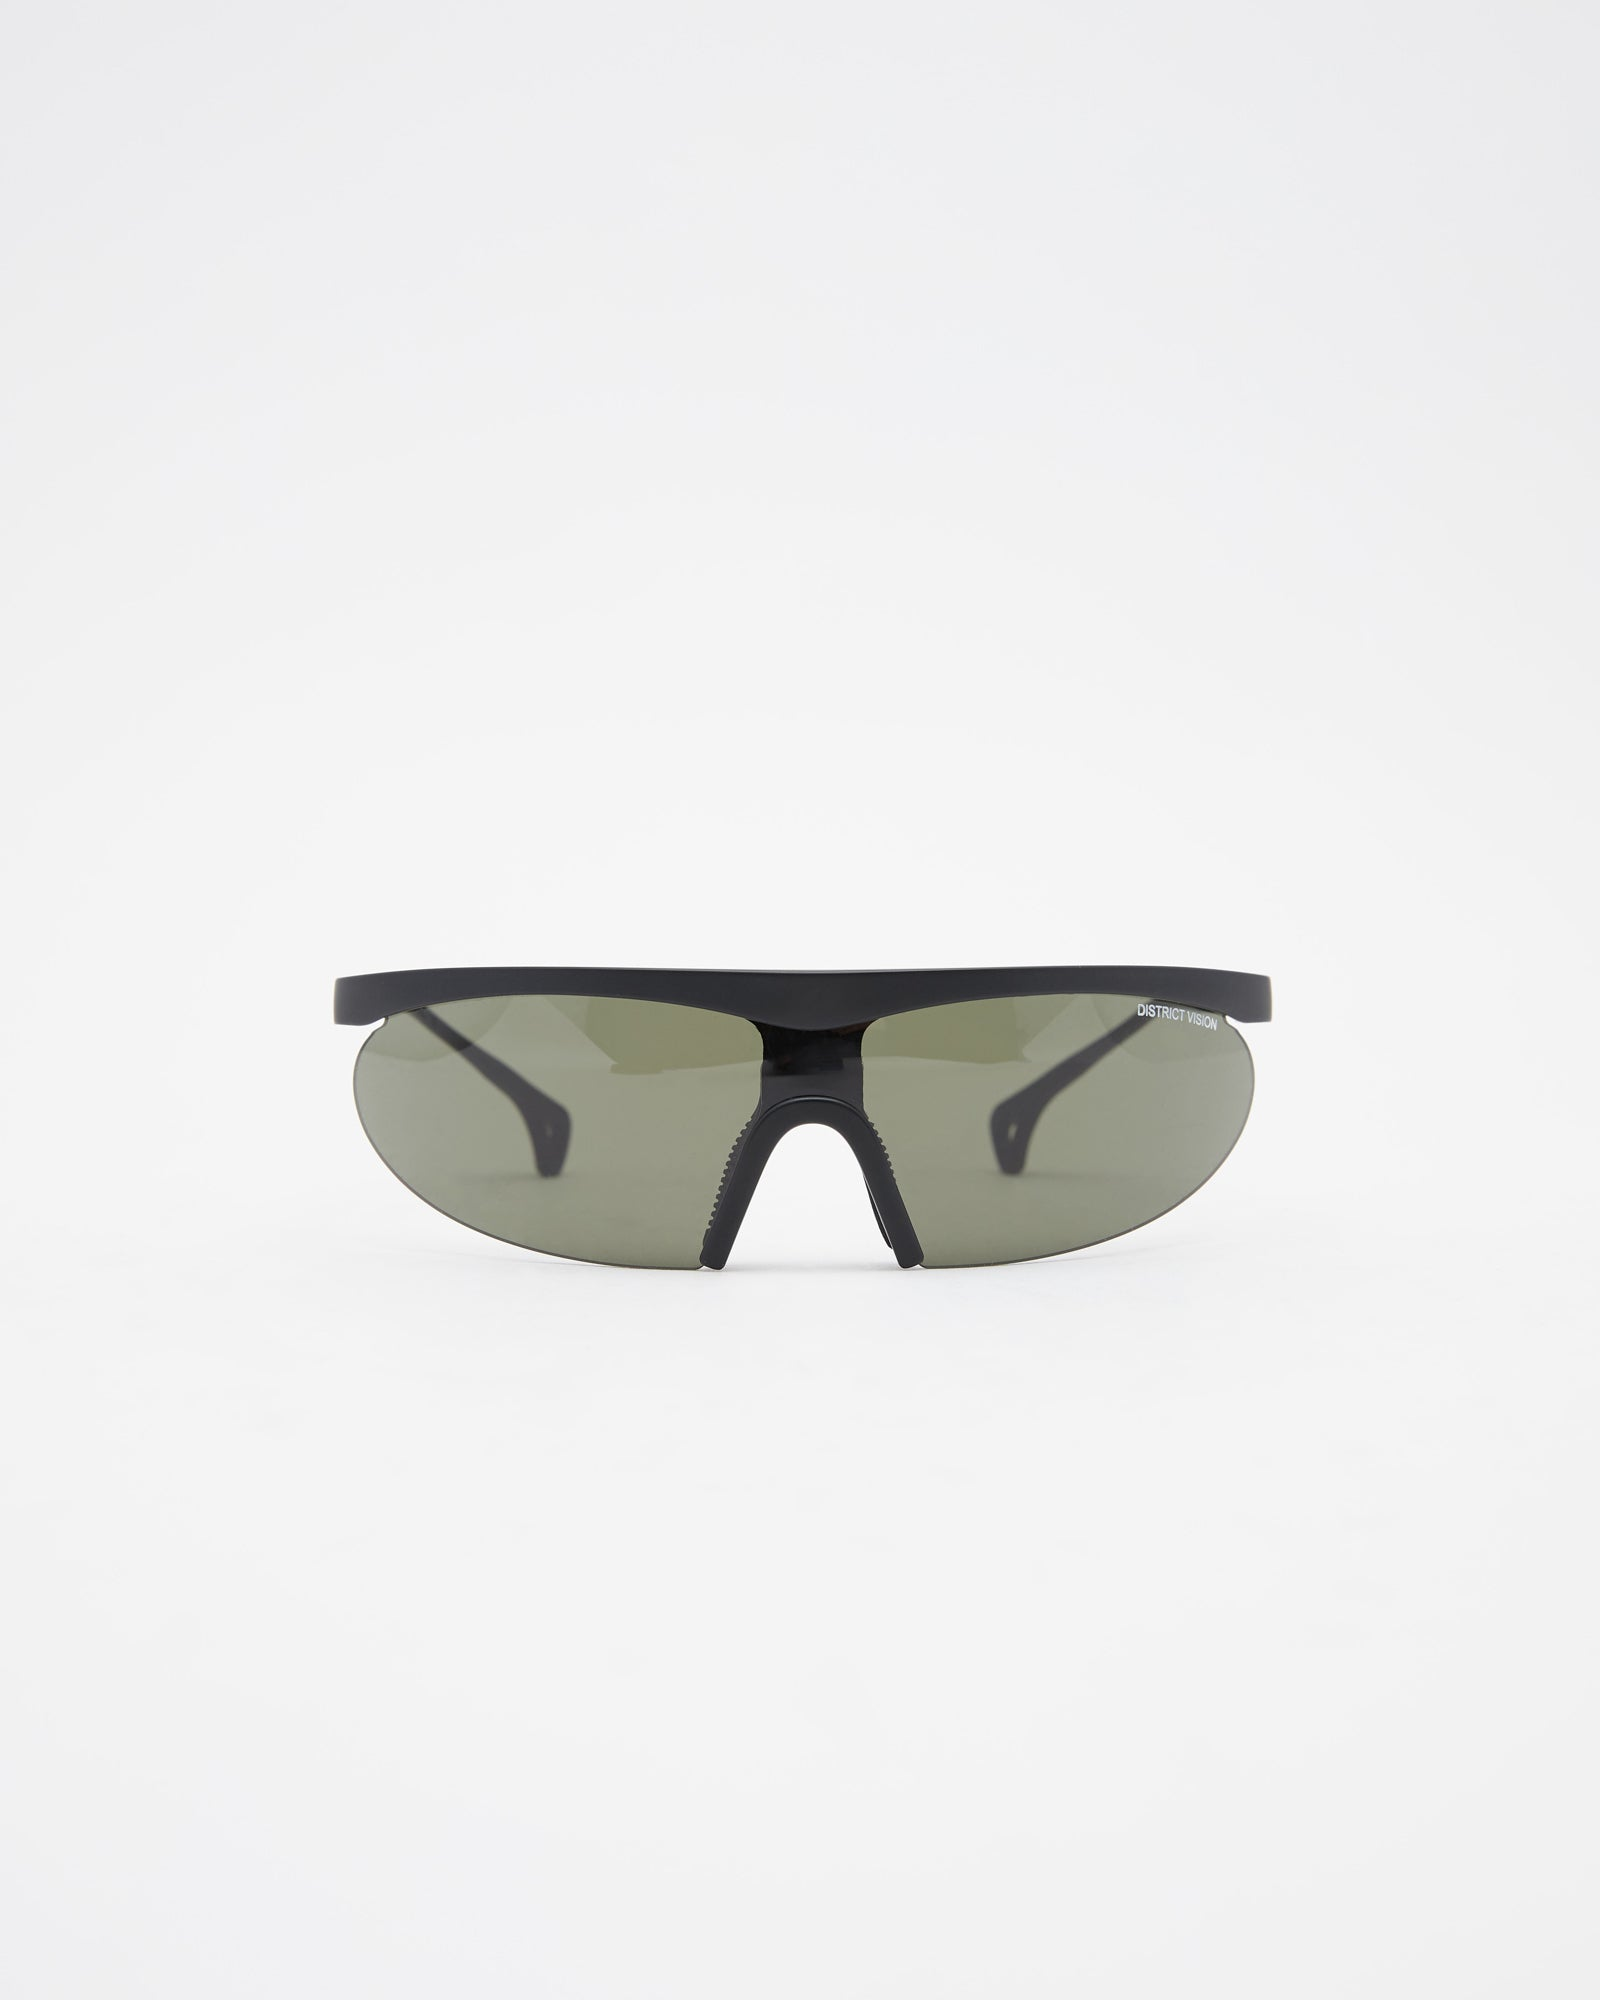 Koharu Glasses in G-15 Green